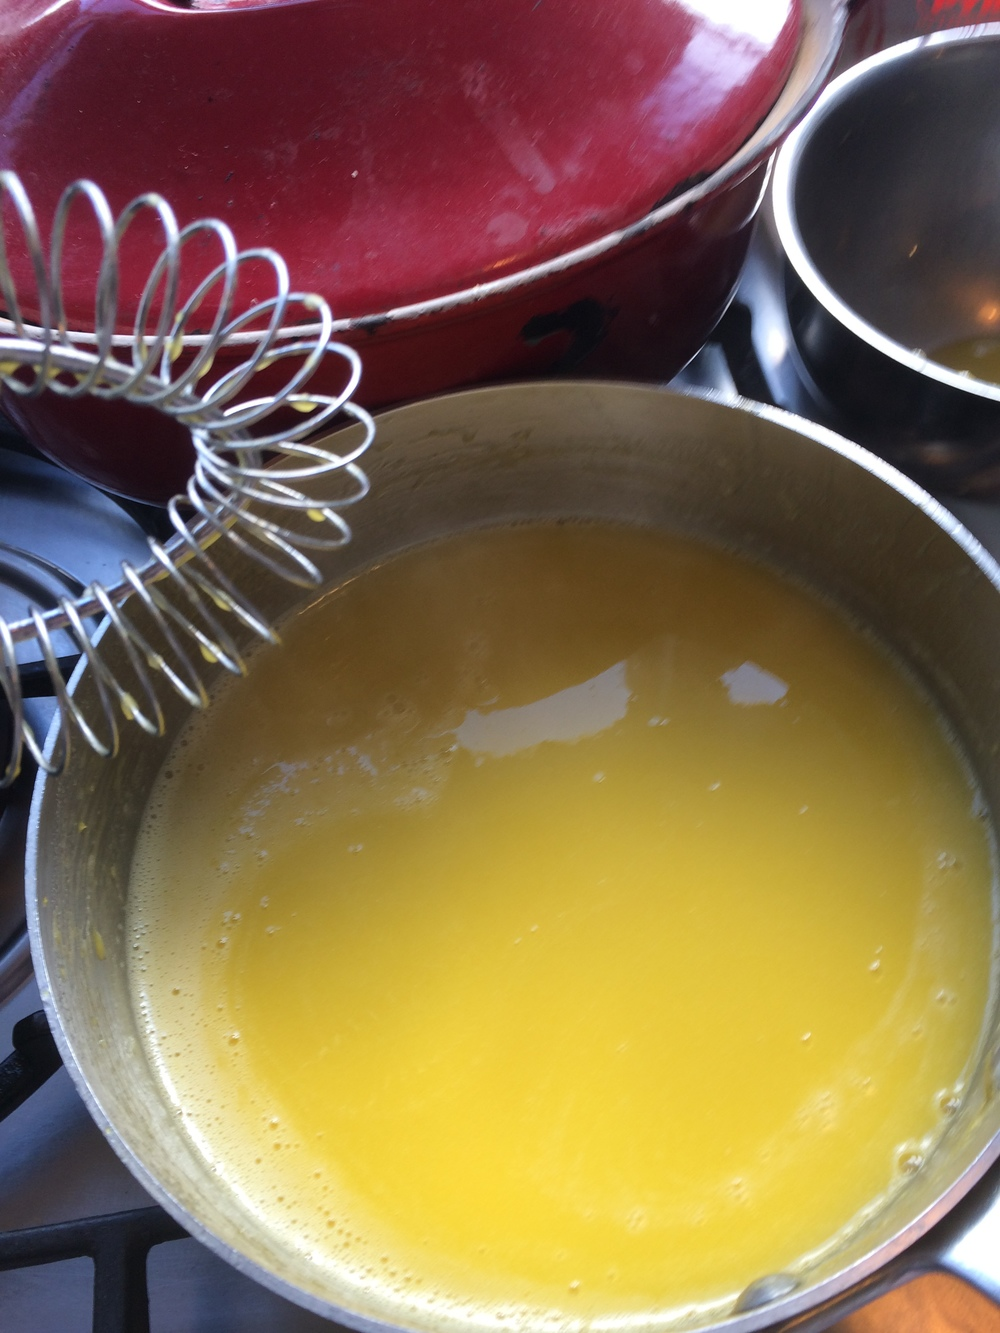 Lemon Curd in the making